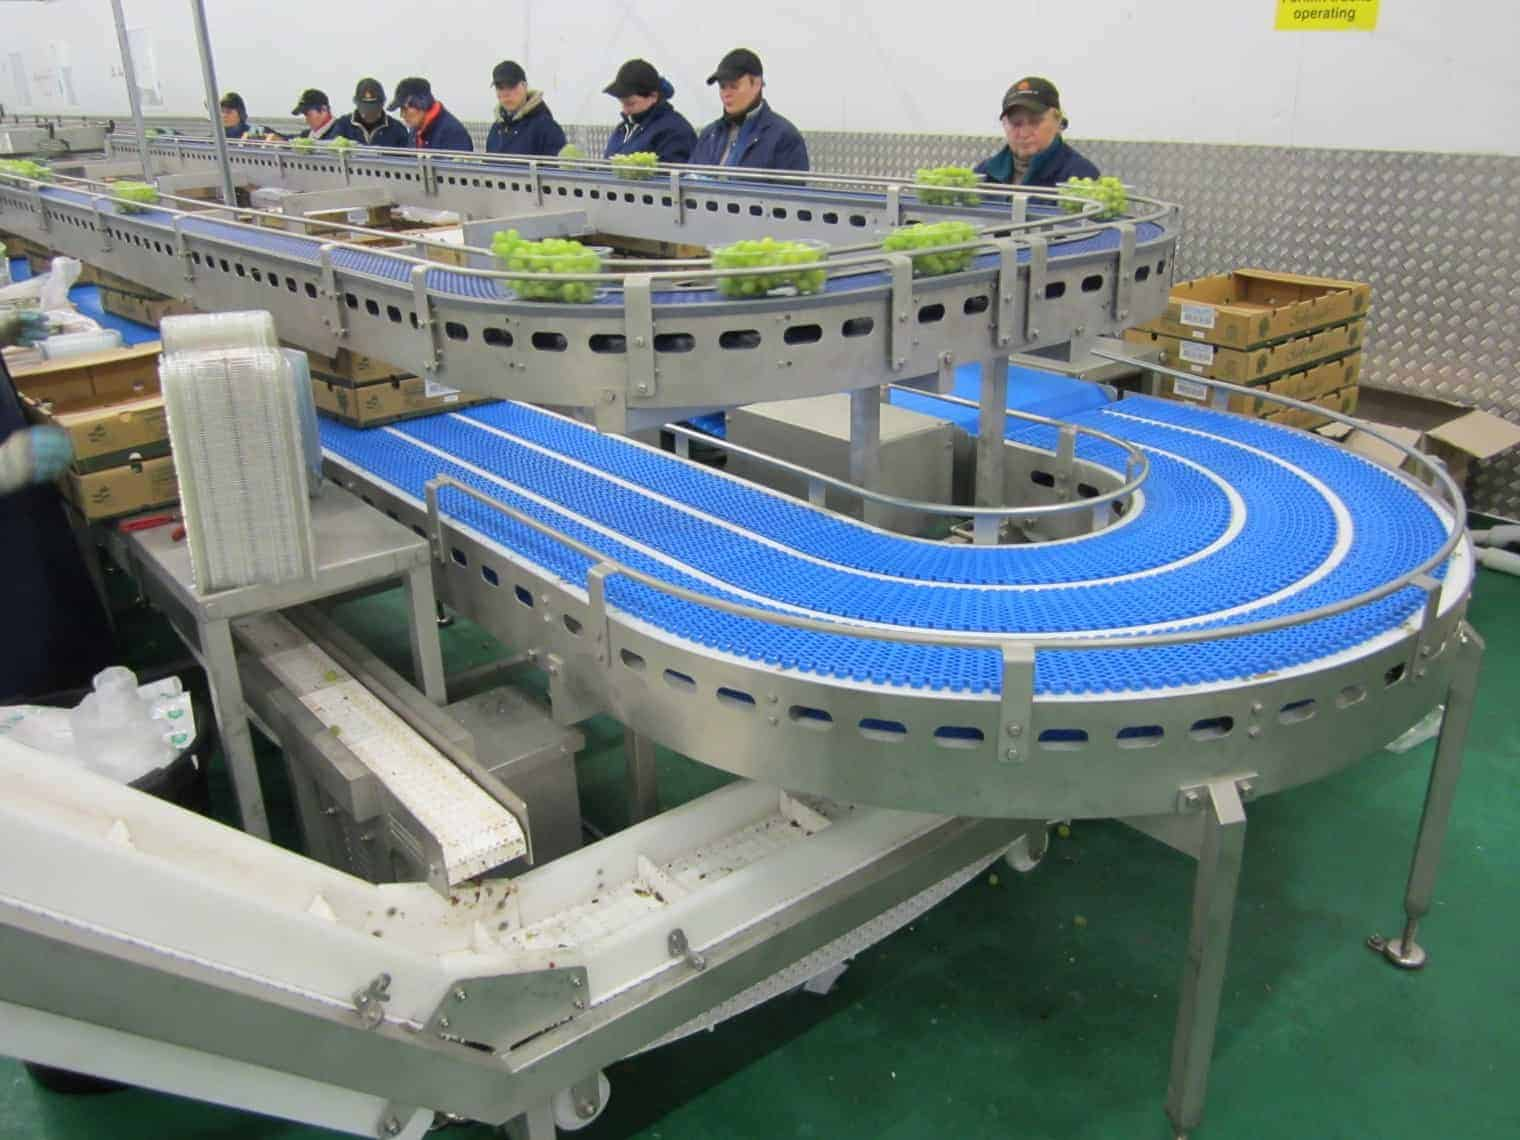 Stainless Conveyor 90 Degree Conveyor Bakery Conveyors